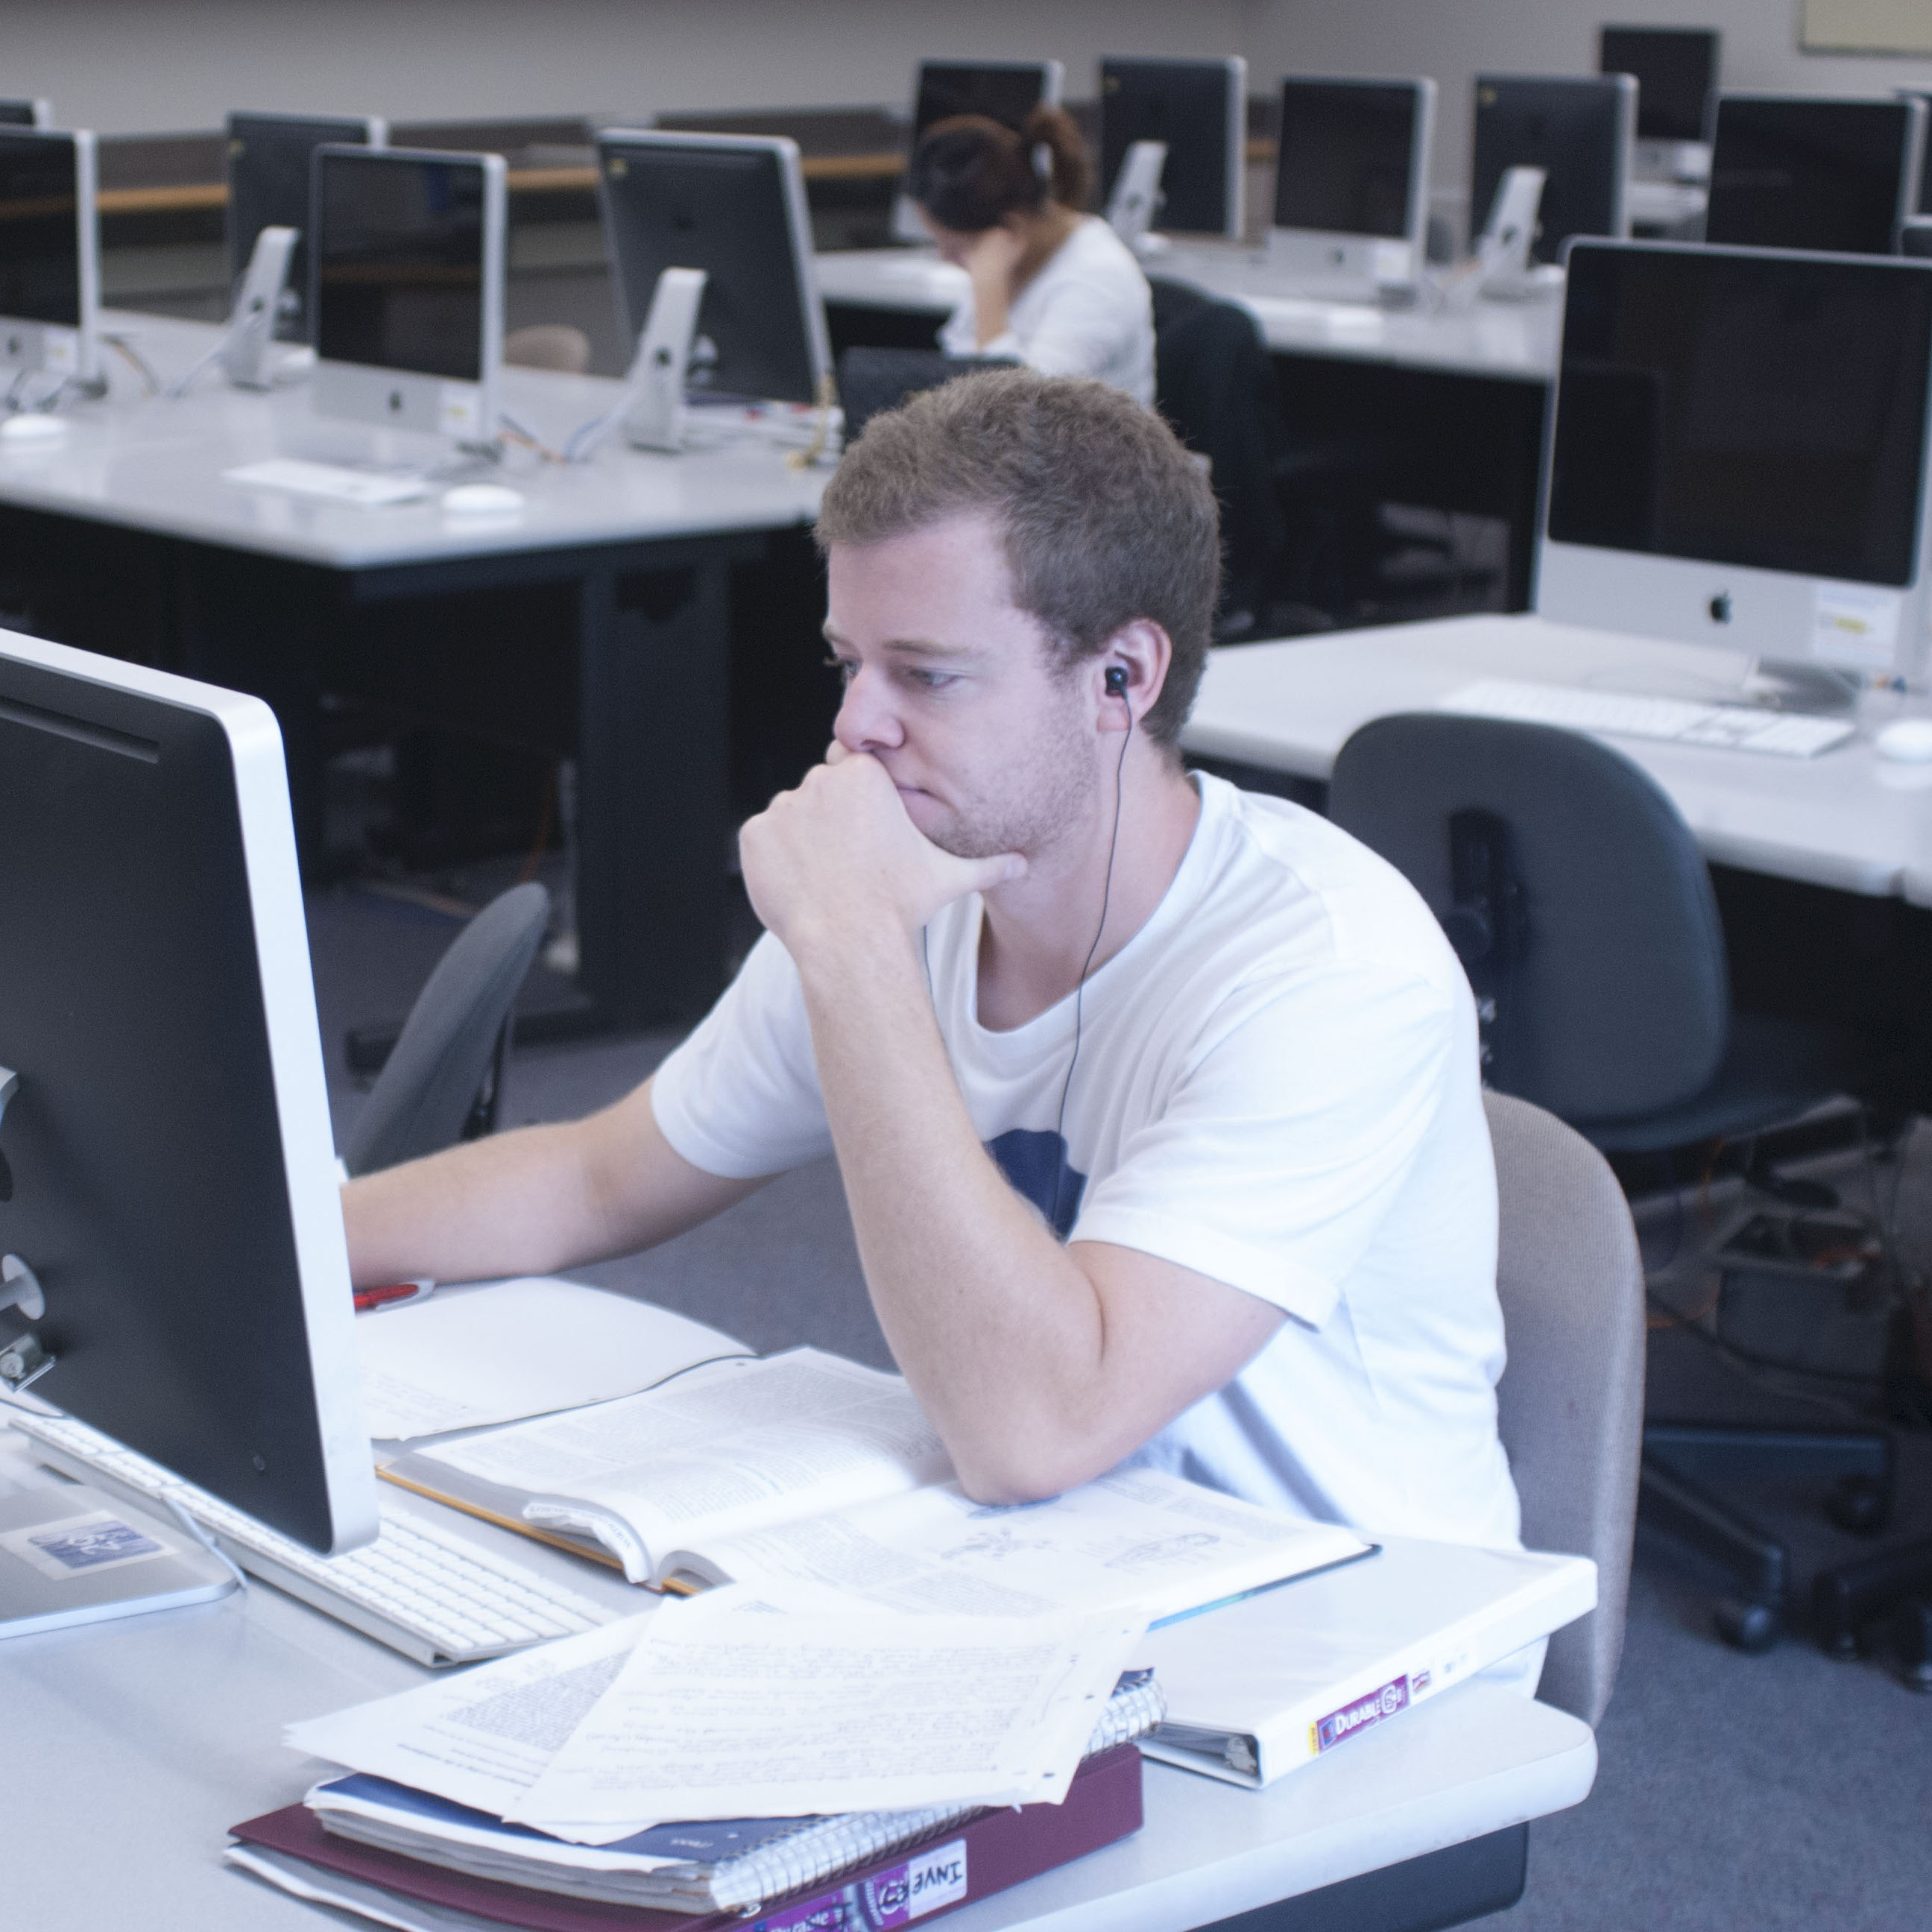 A student in the 24-hour computing lab